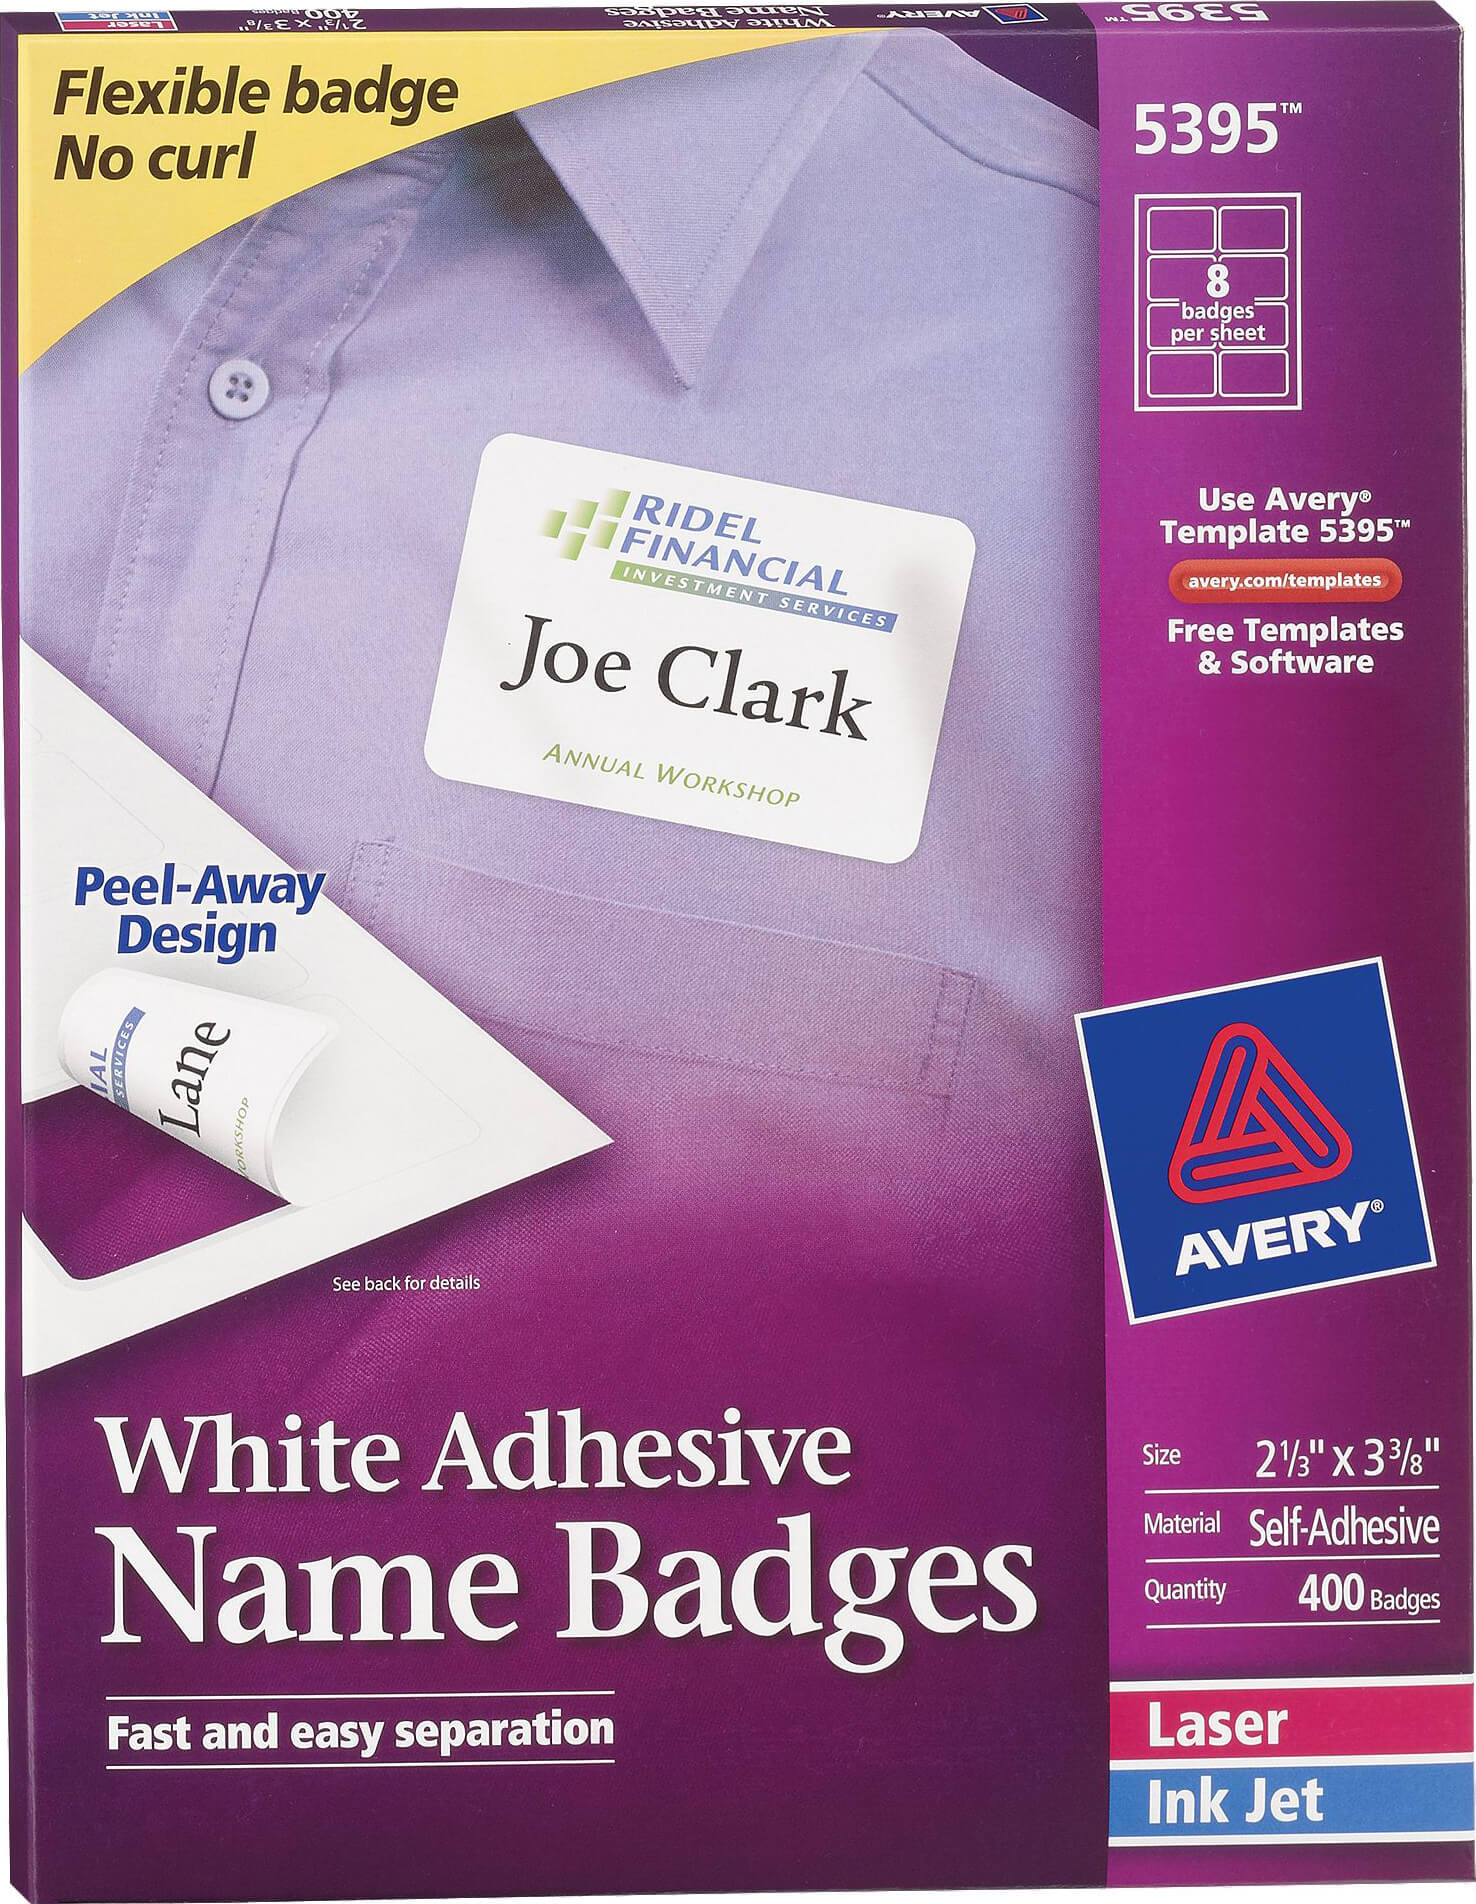 Avery white adhesive name badge labels 5395 avery for Avery name badge template 5392